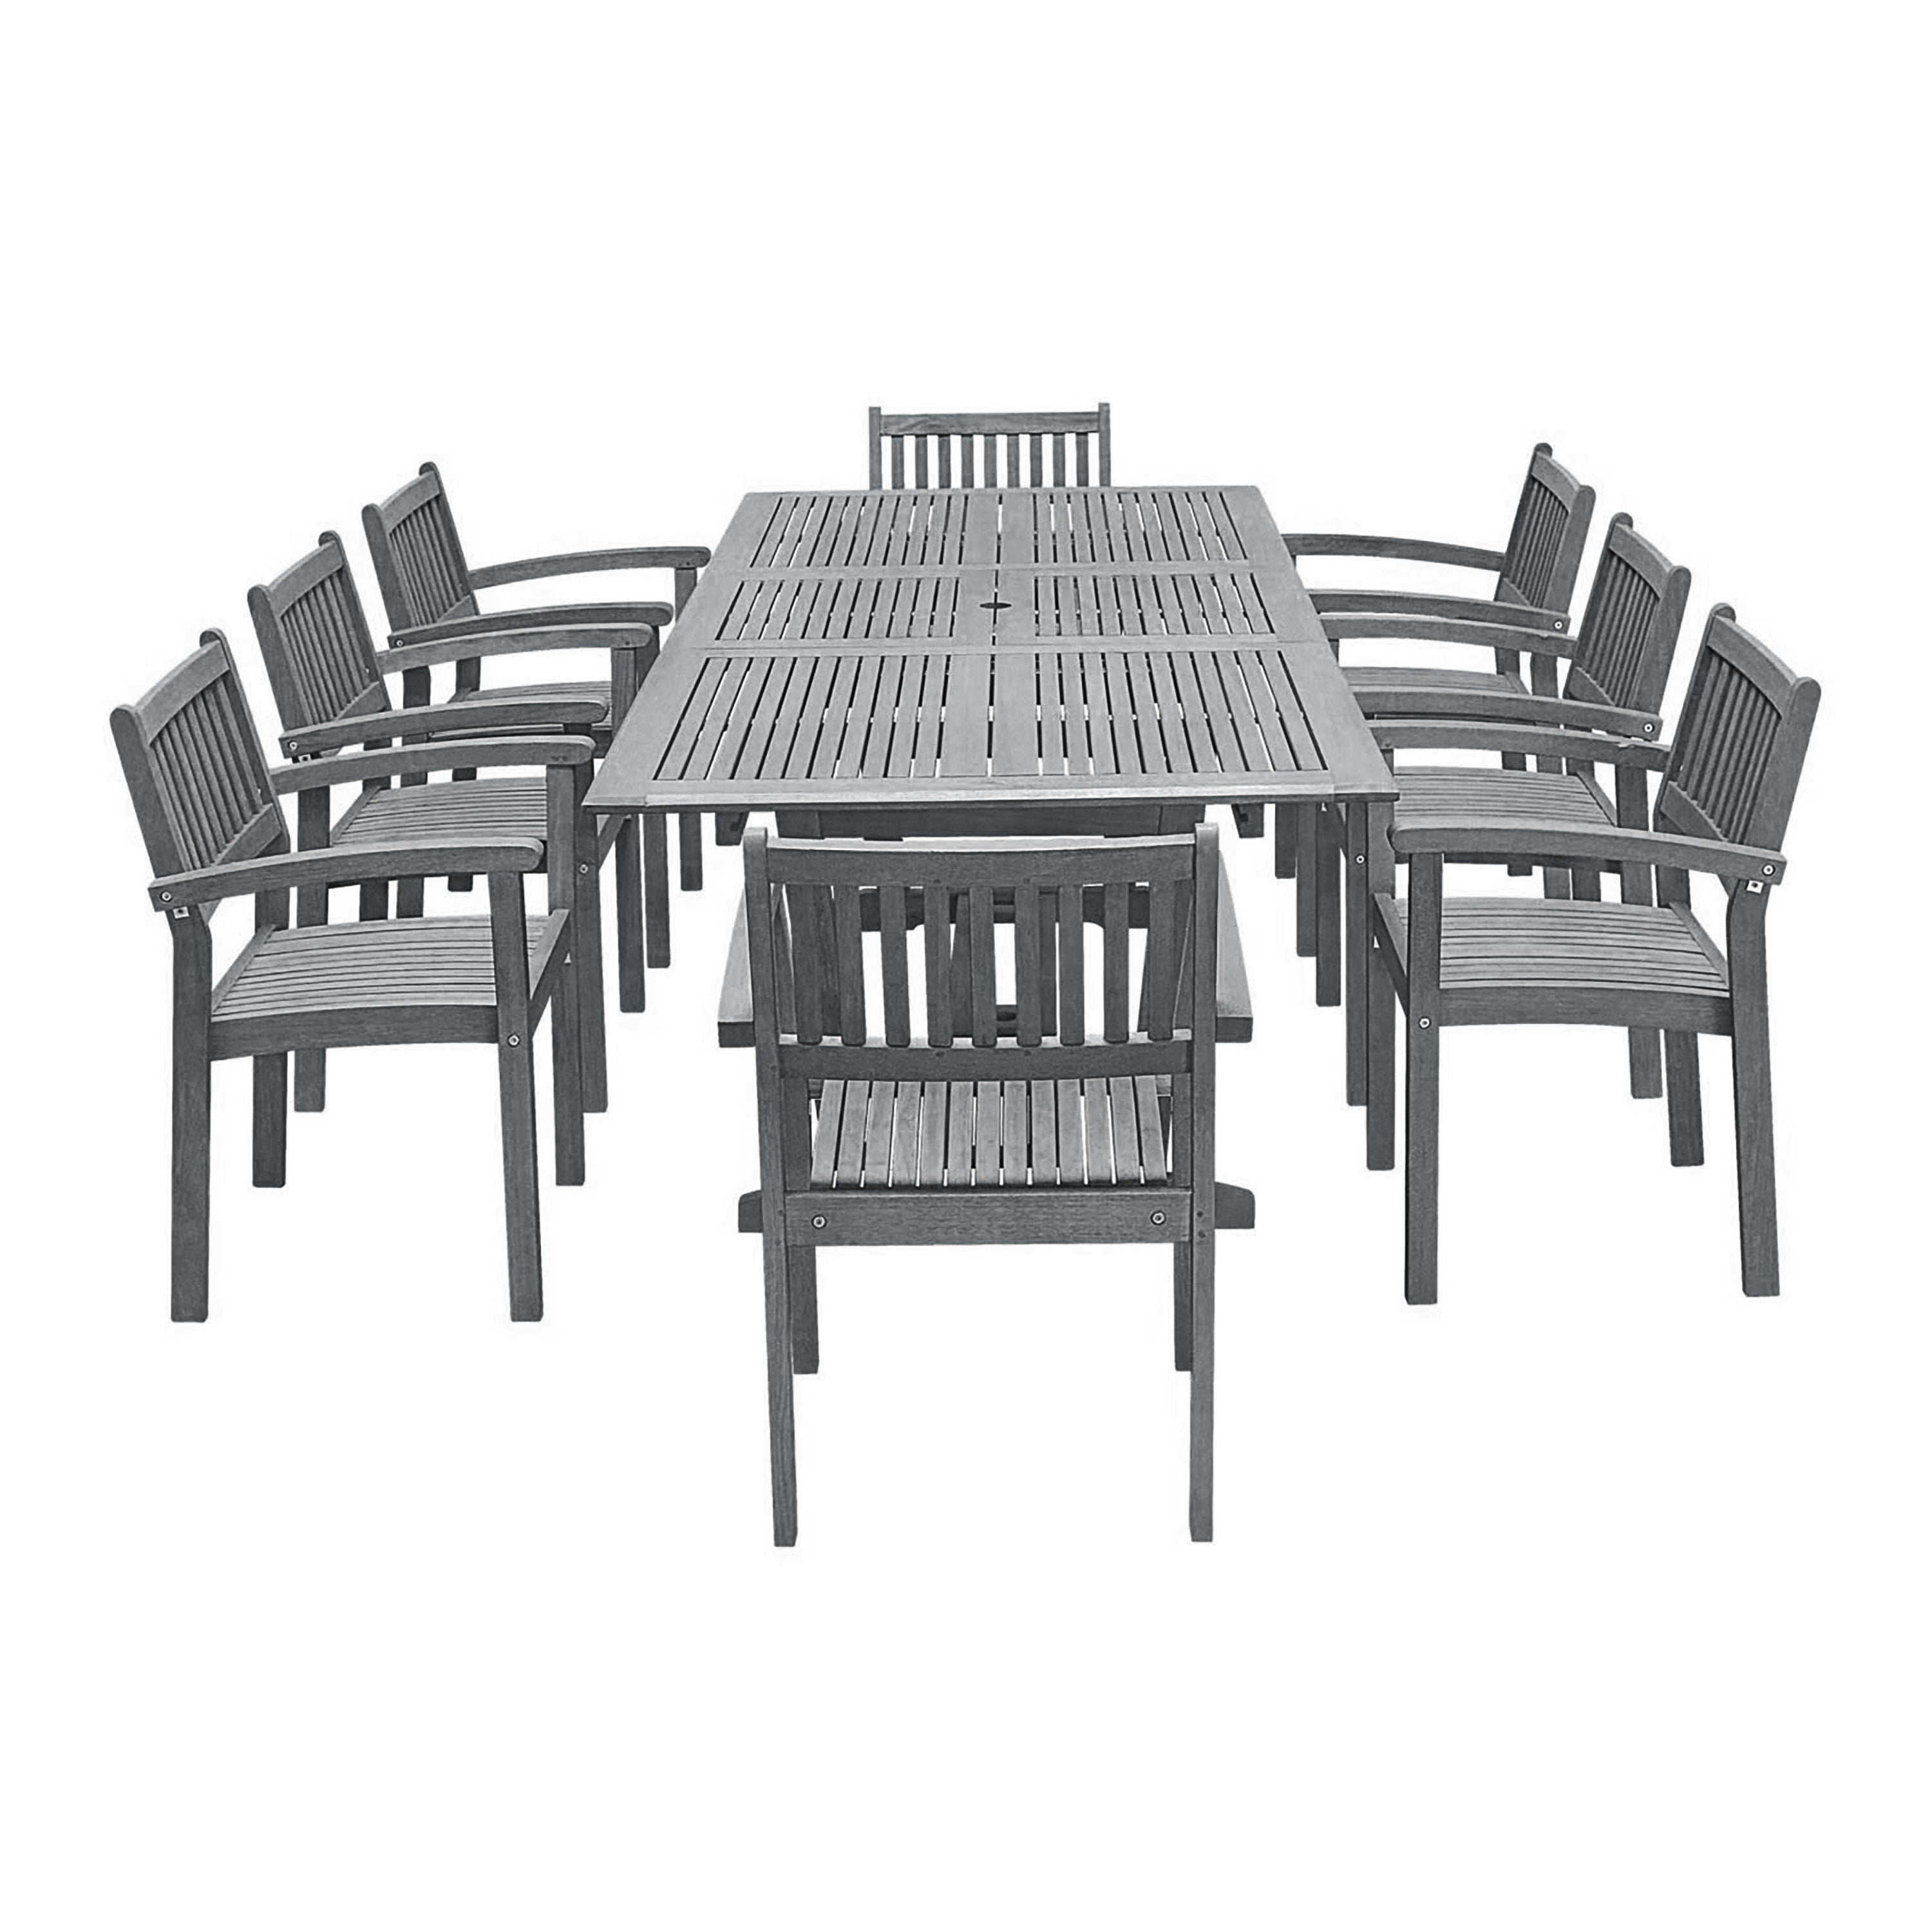 Havenside Home Surfside 9 Piece Wood Outdoor Dining Set With Rectangular Extension Table And Stacking Chairs